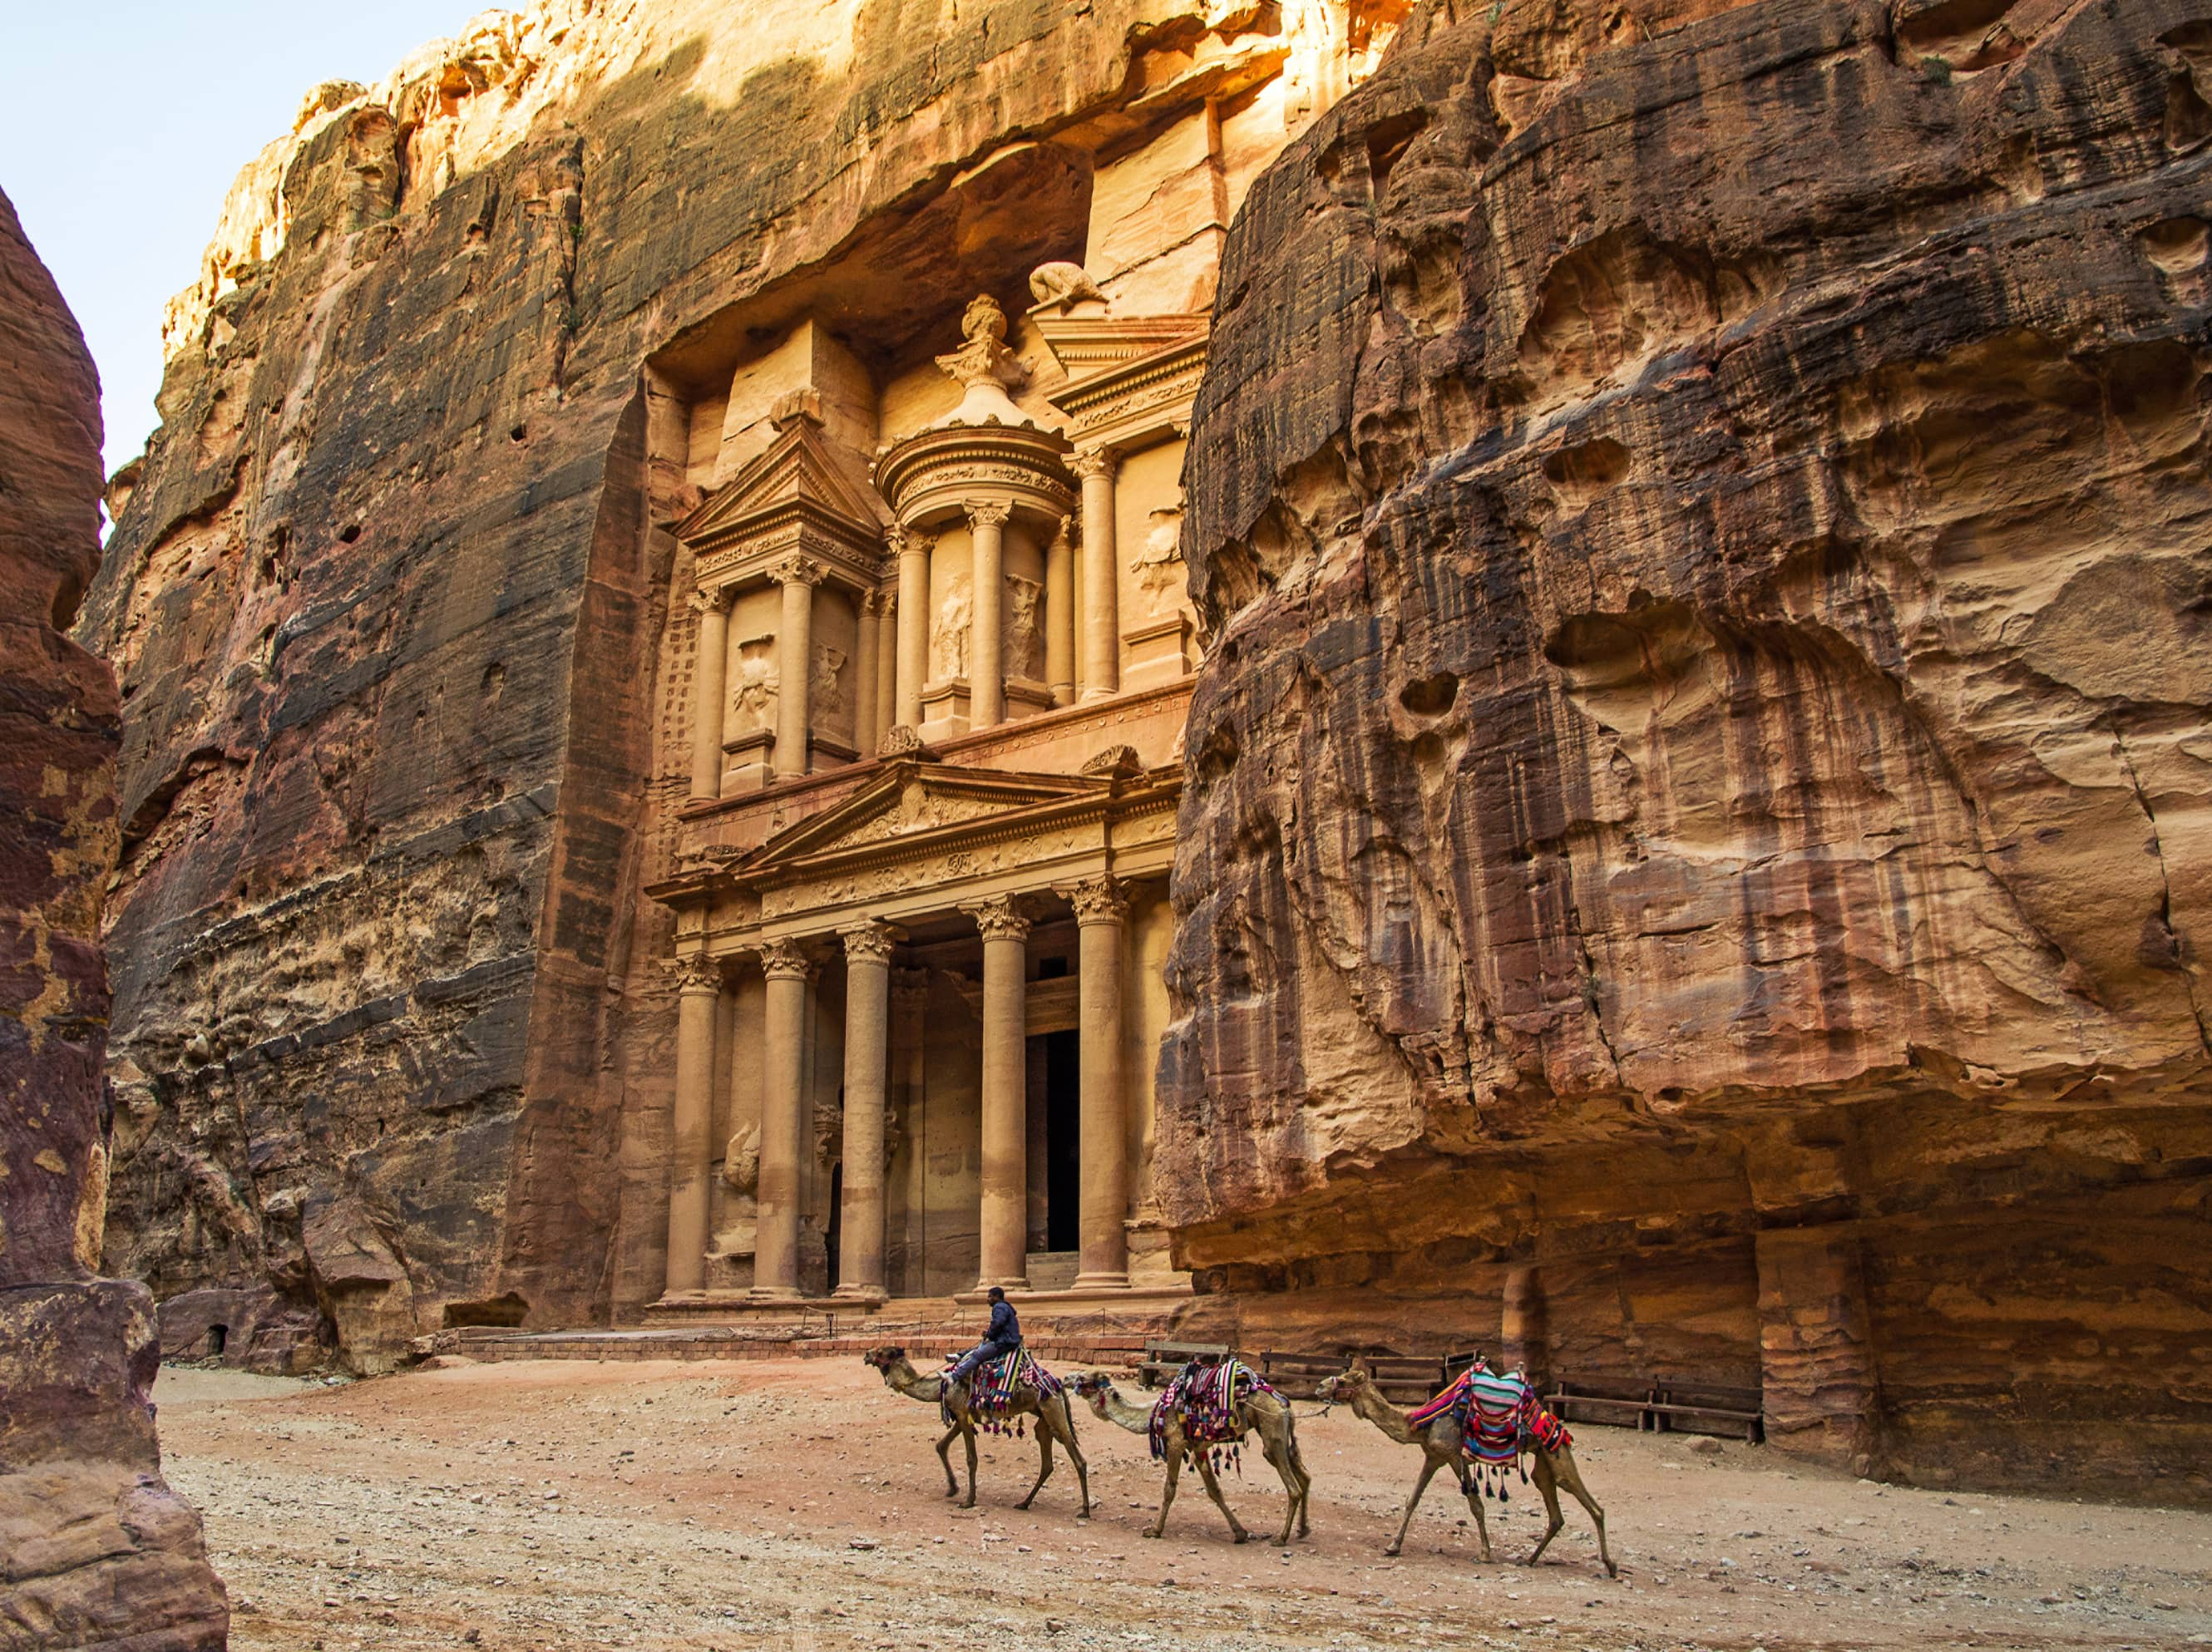 Marvel at the ancient, rock-hewn city of Petra.